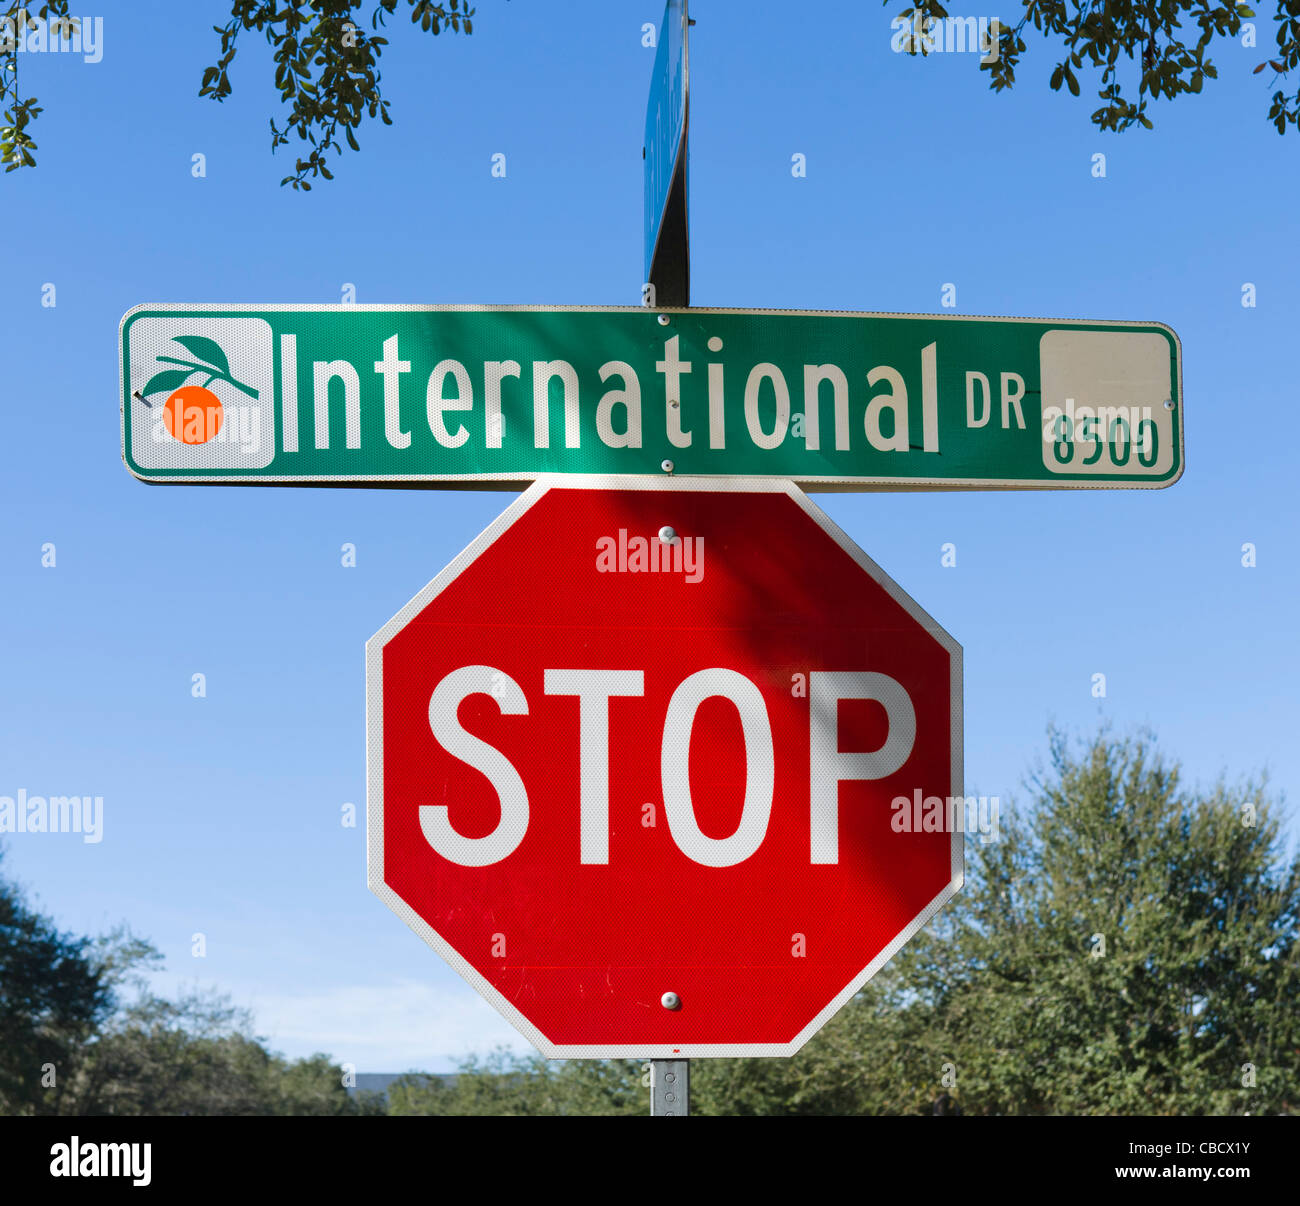 Street and Stop signs, International Drive, Orlando, Central Florida, USA - Stock Image